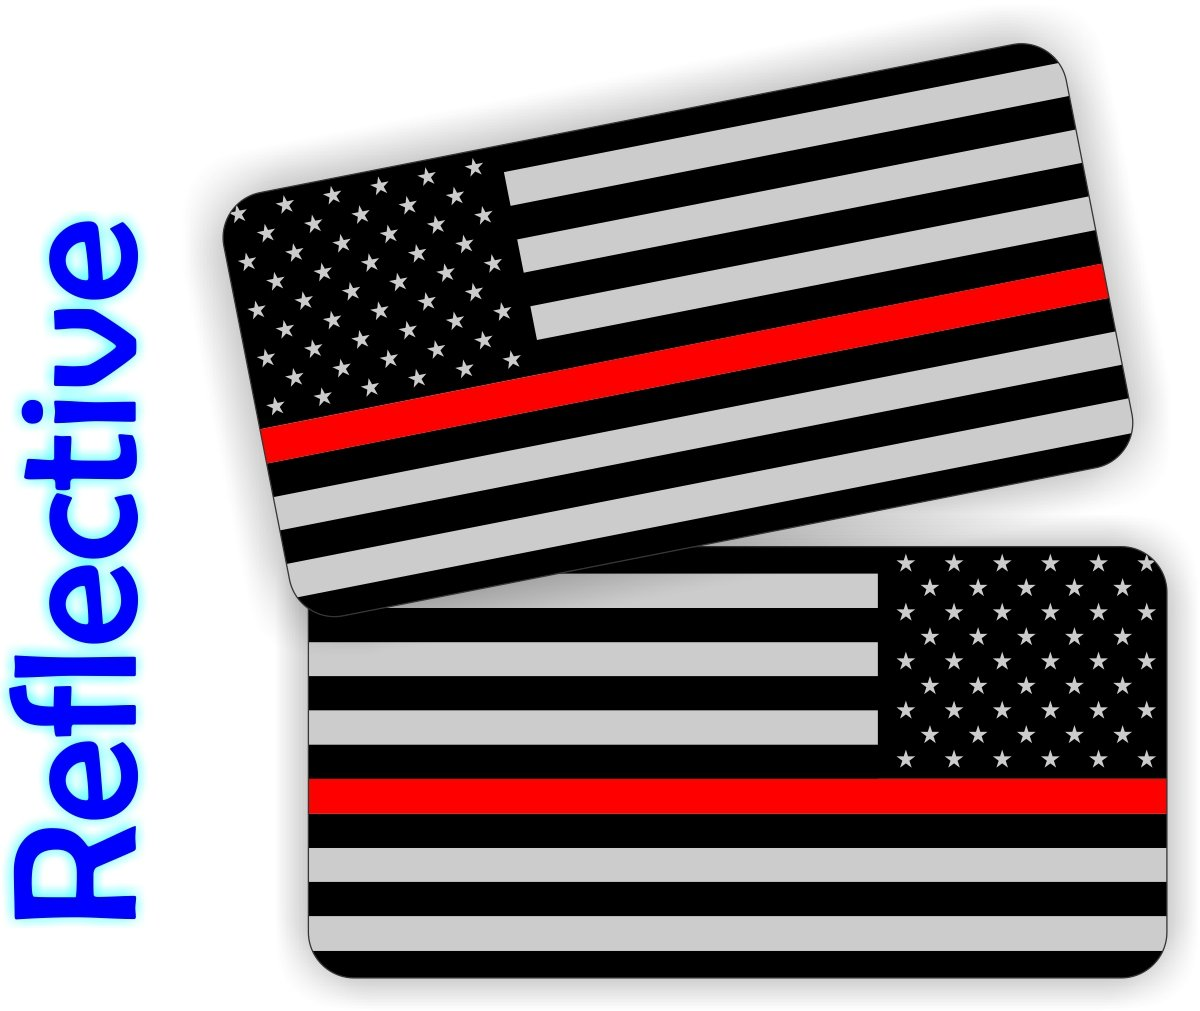 Pair - REFLECTIVE Thin Red Line Firefighter American Flag Hard Hat Stickers | USA Black Ops Decals | Tactical Gear Survival Labels | Fire Rescue EMT Paramedic Flags Toolbox Helmet Patriotic Old Glory